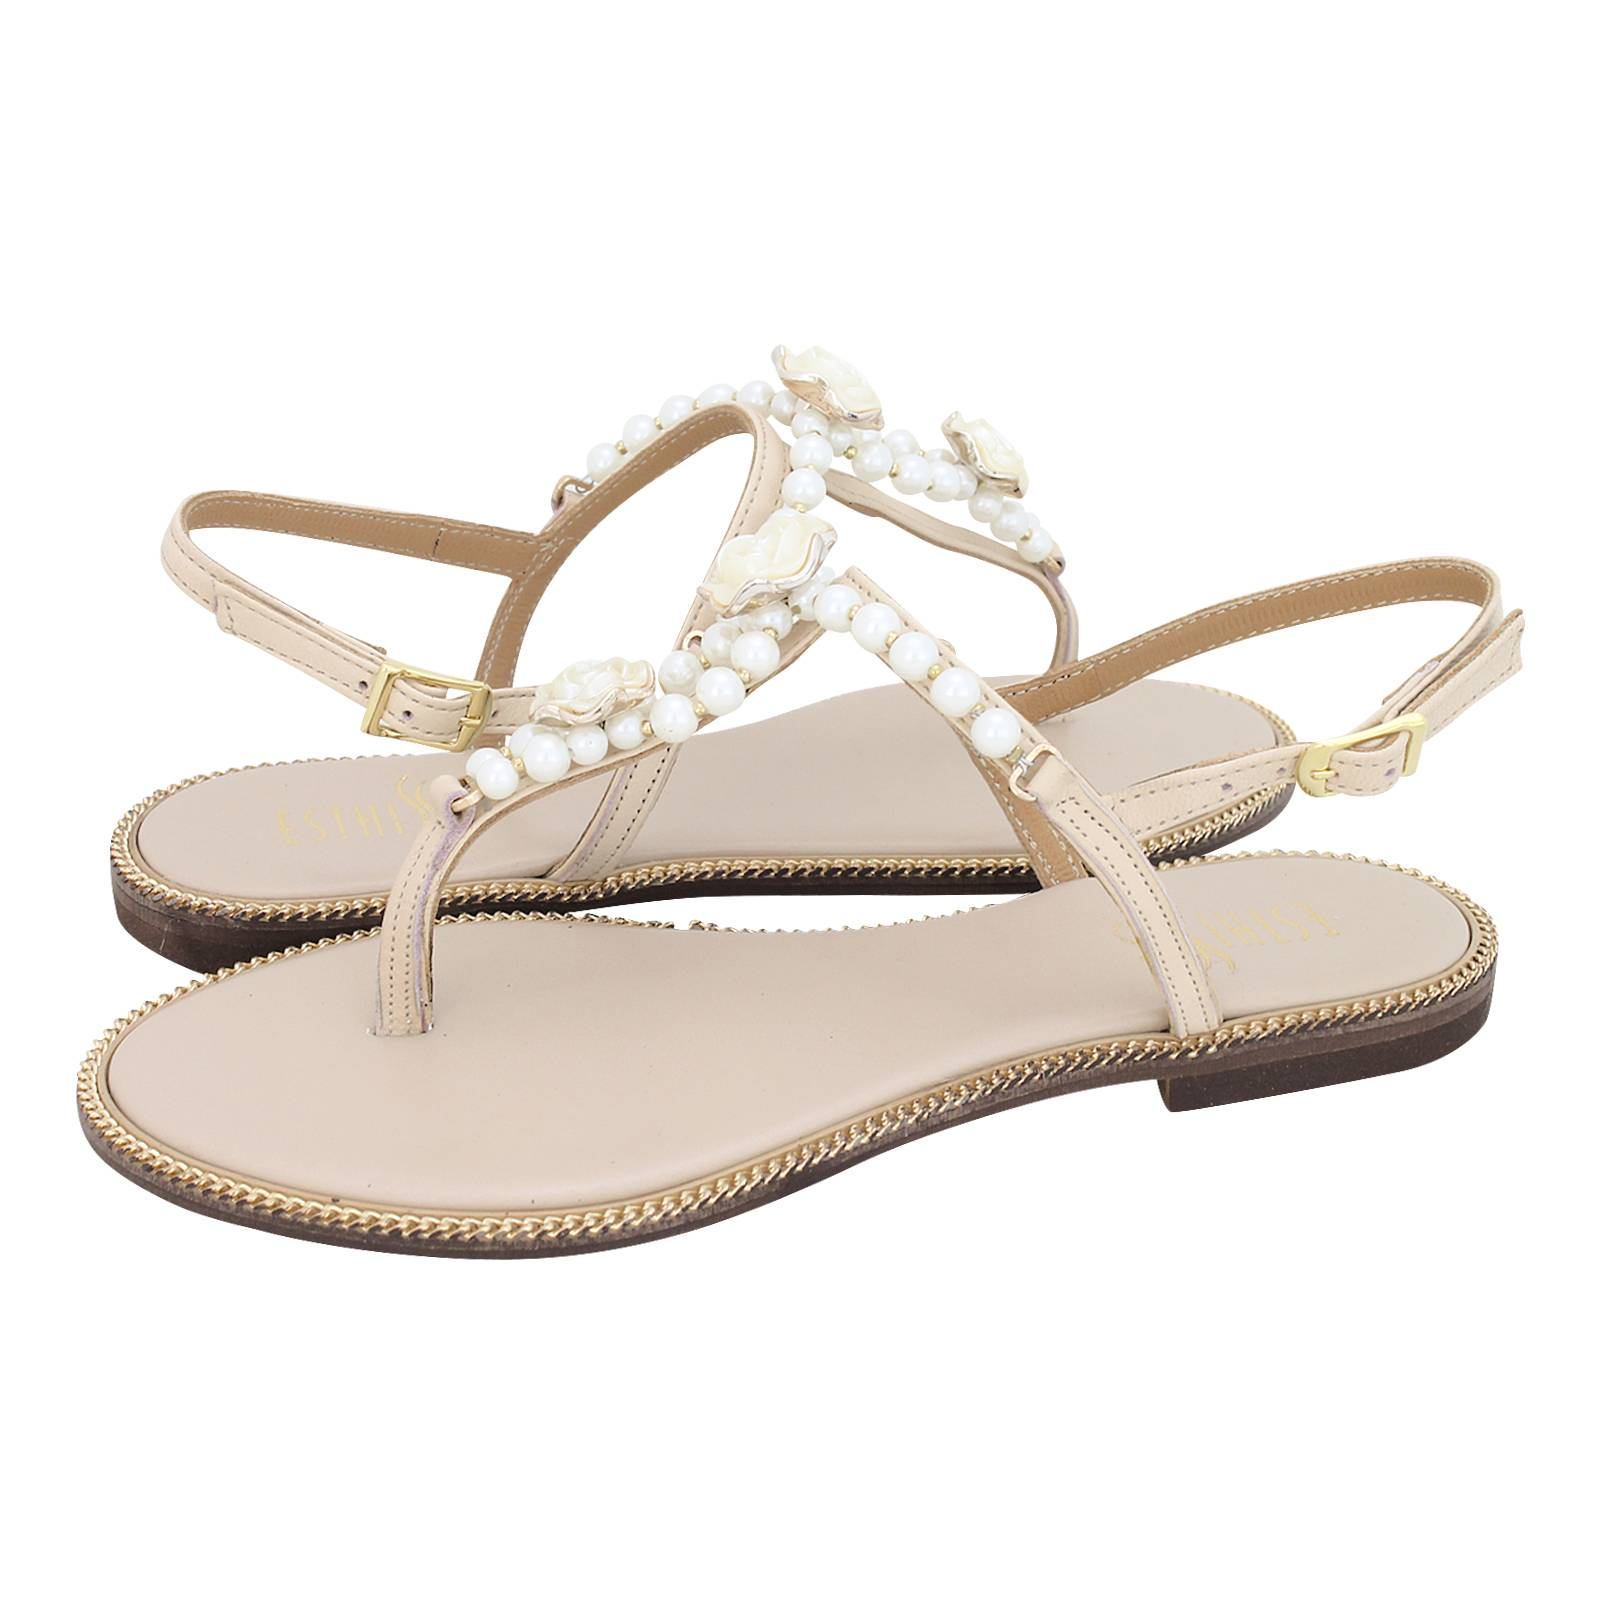 Nades - Esthissis Women s flat sandals made of leather - Gianna ... 482cecb3d2c